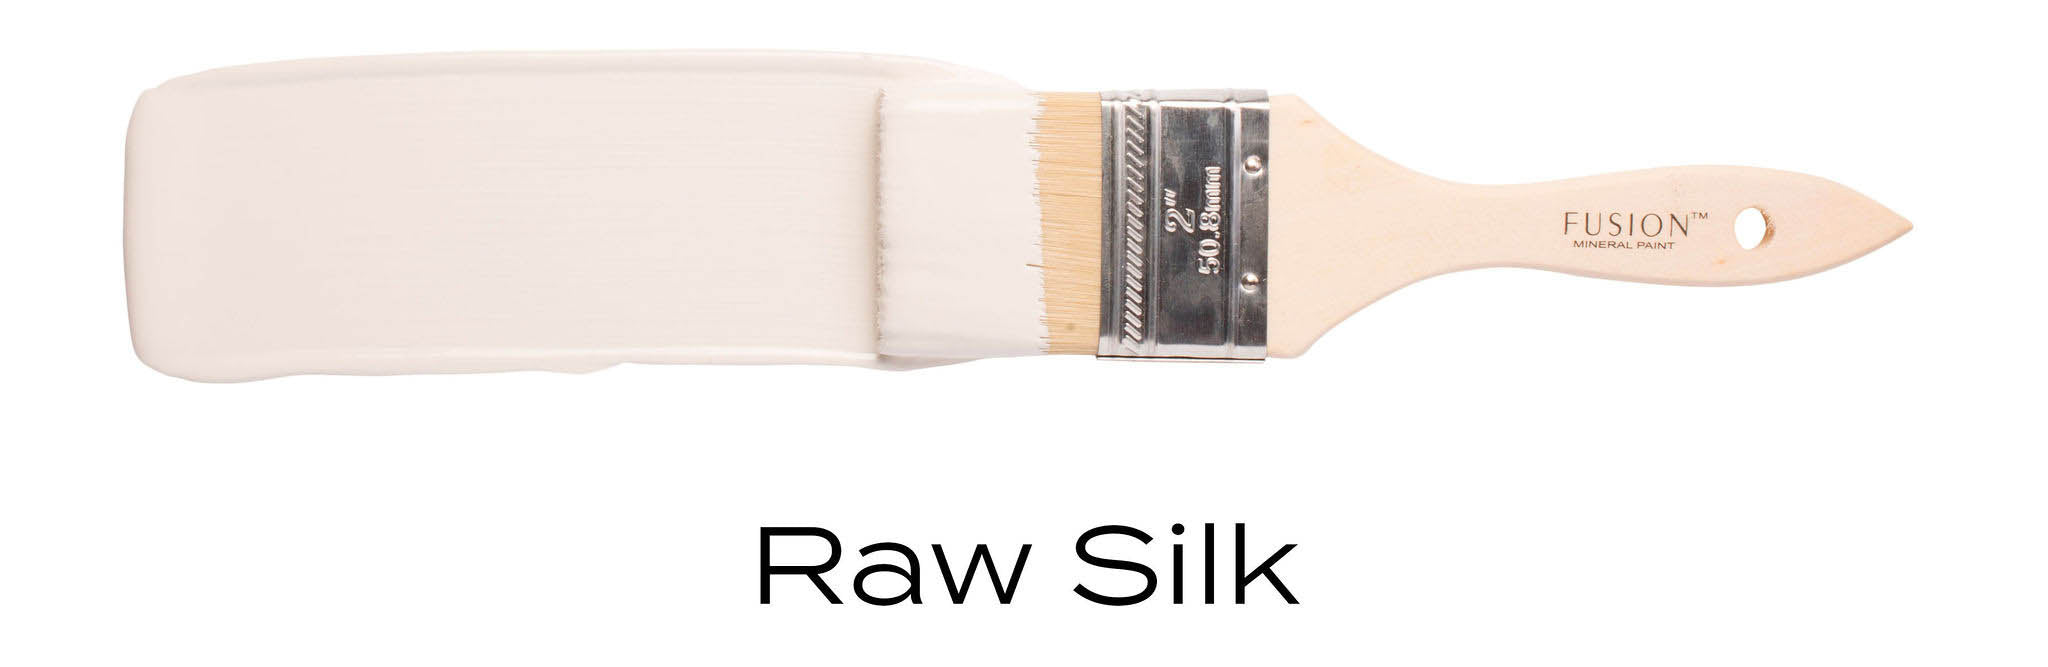 Raw Silk Fusion Mineral Paint Furniture Paint Colour Example, No Prep or top coat needed, UK Stockist